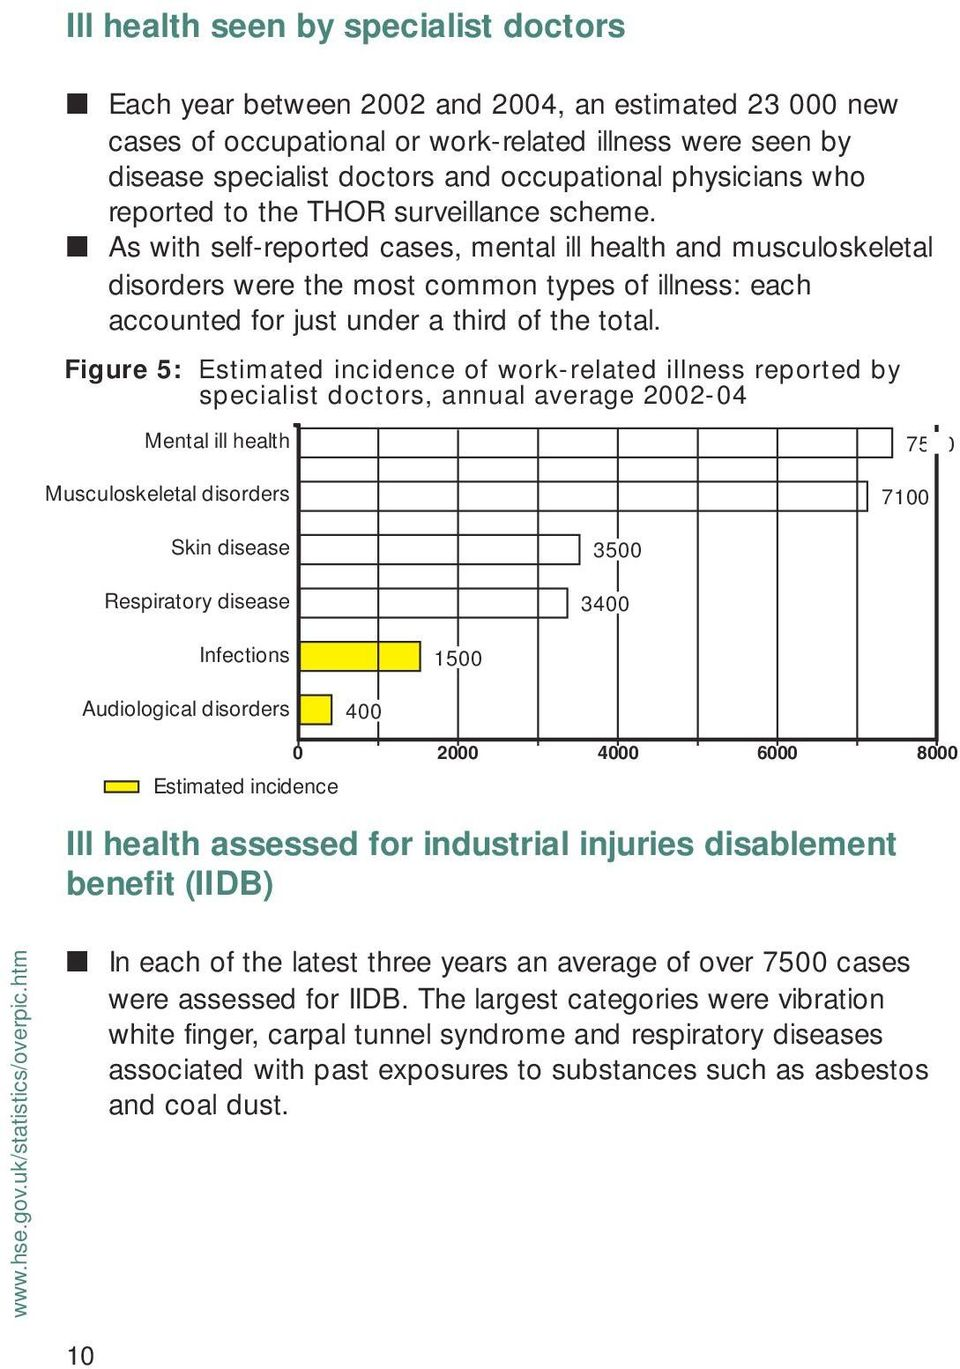 As with self-reported cases, mental ill health and musculoskeletal disorders were the most common types of illness: each accounted for just under a third of the total.